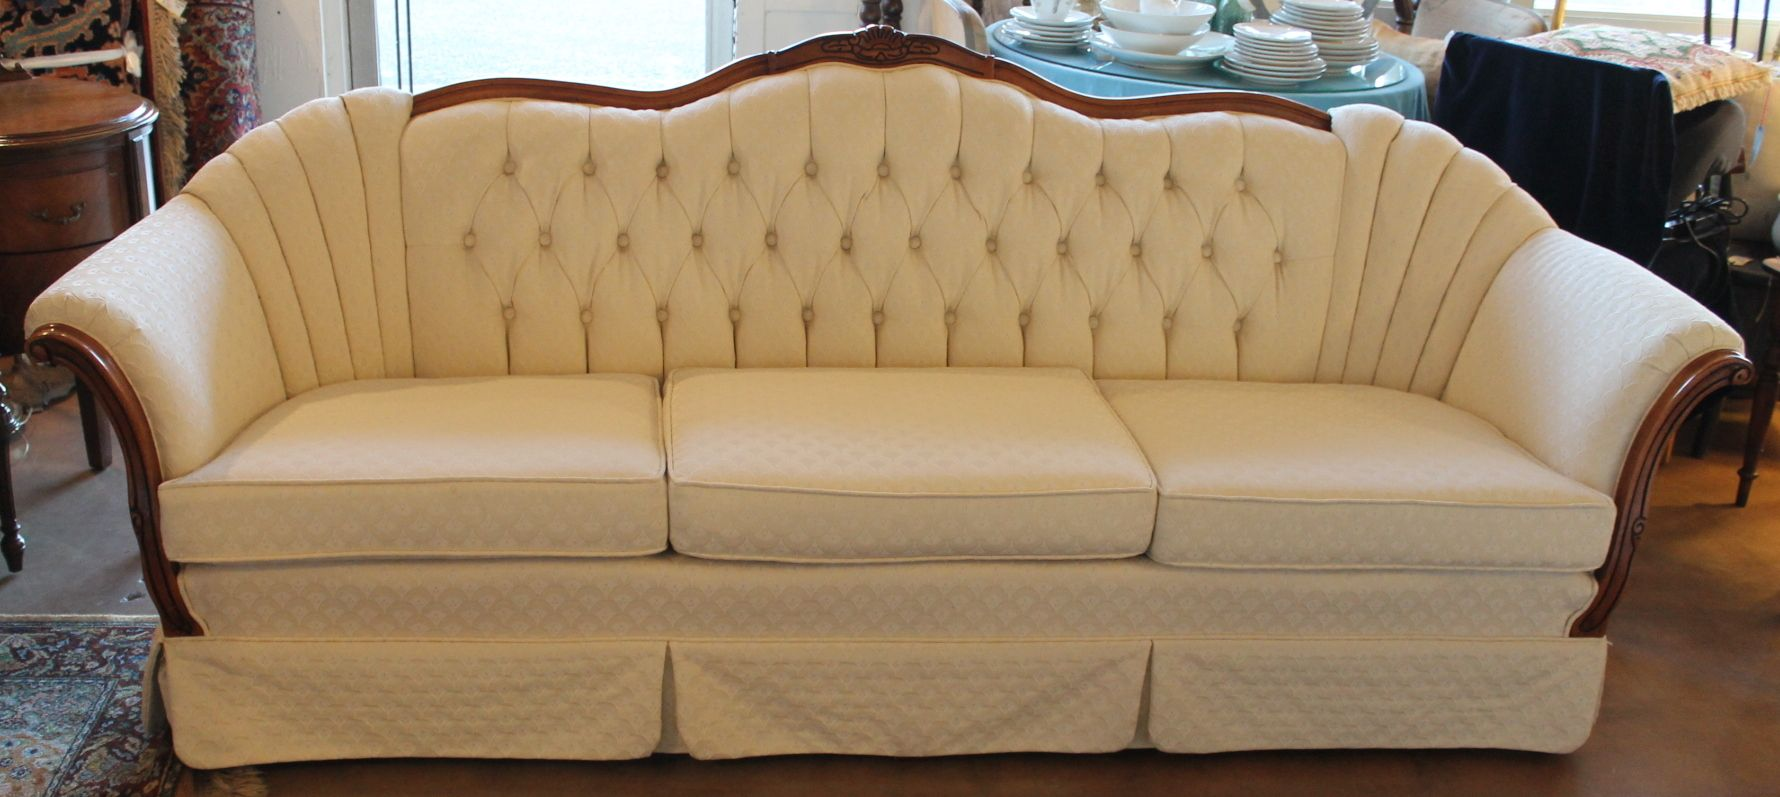 Formal French Provincial sofa by Kingsley Furniture